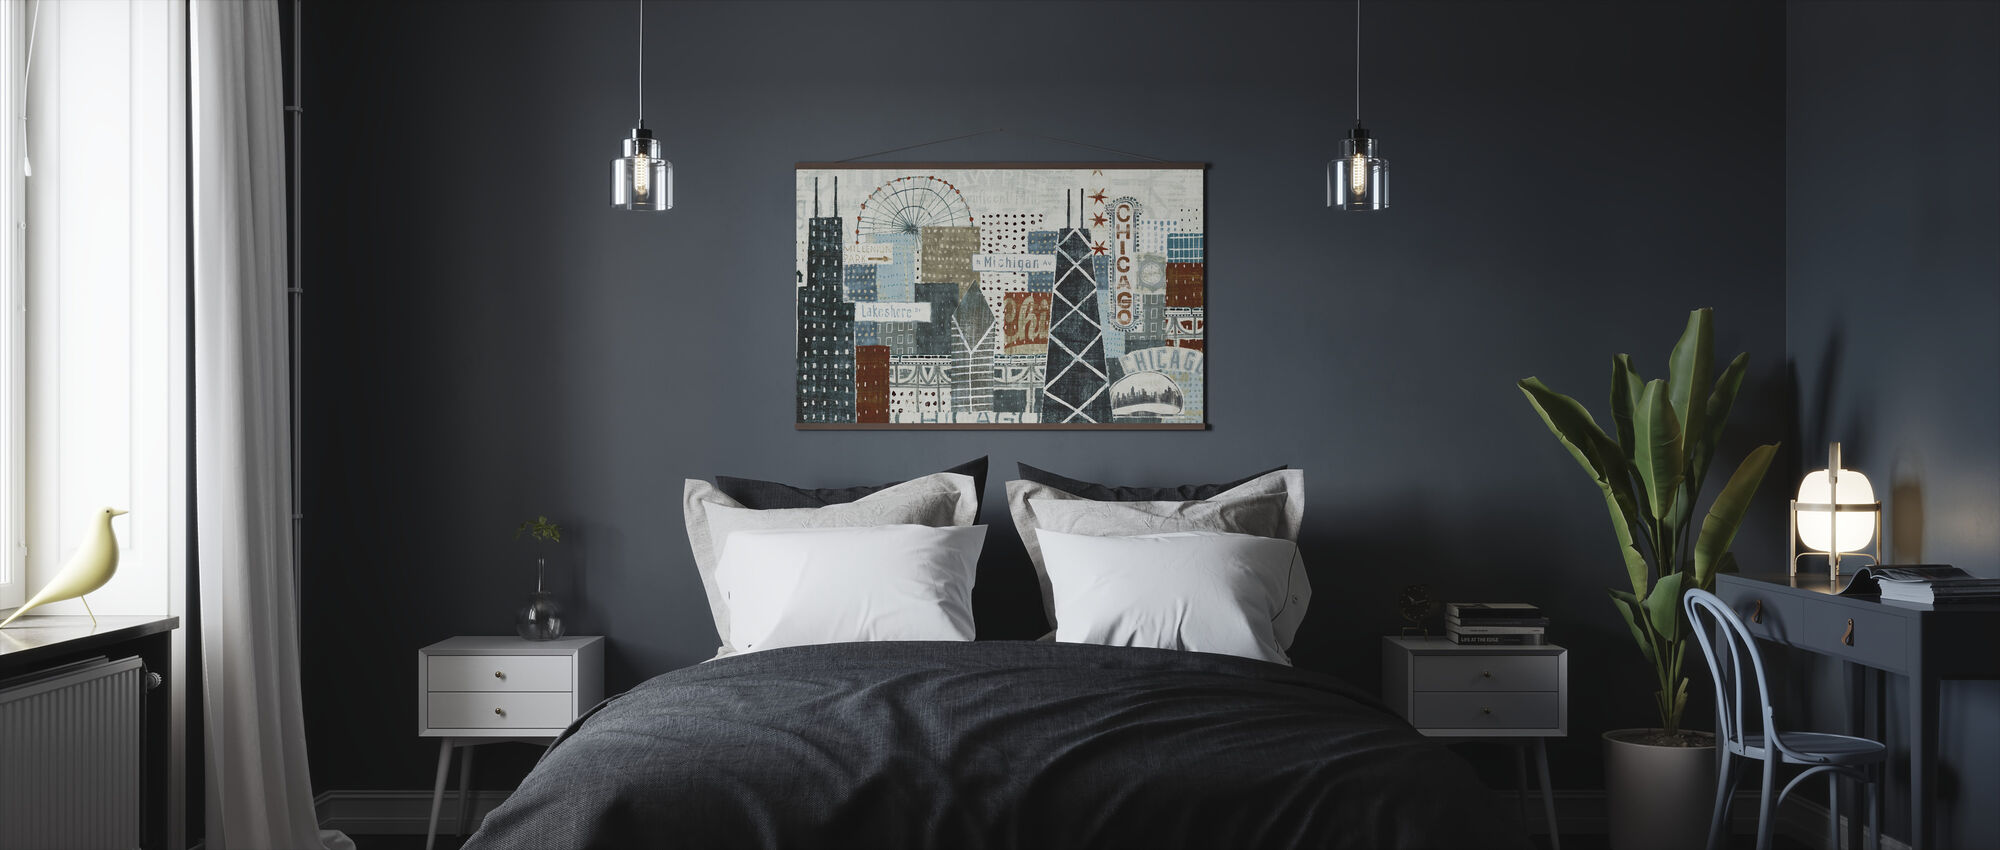 Hey Chicago - Poster - Bedroom